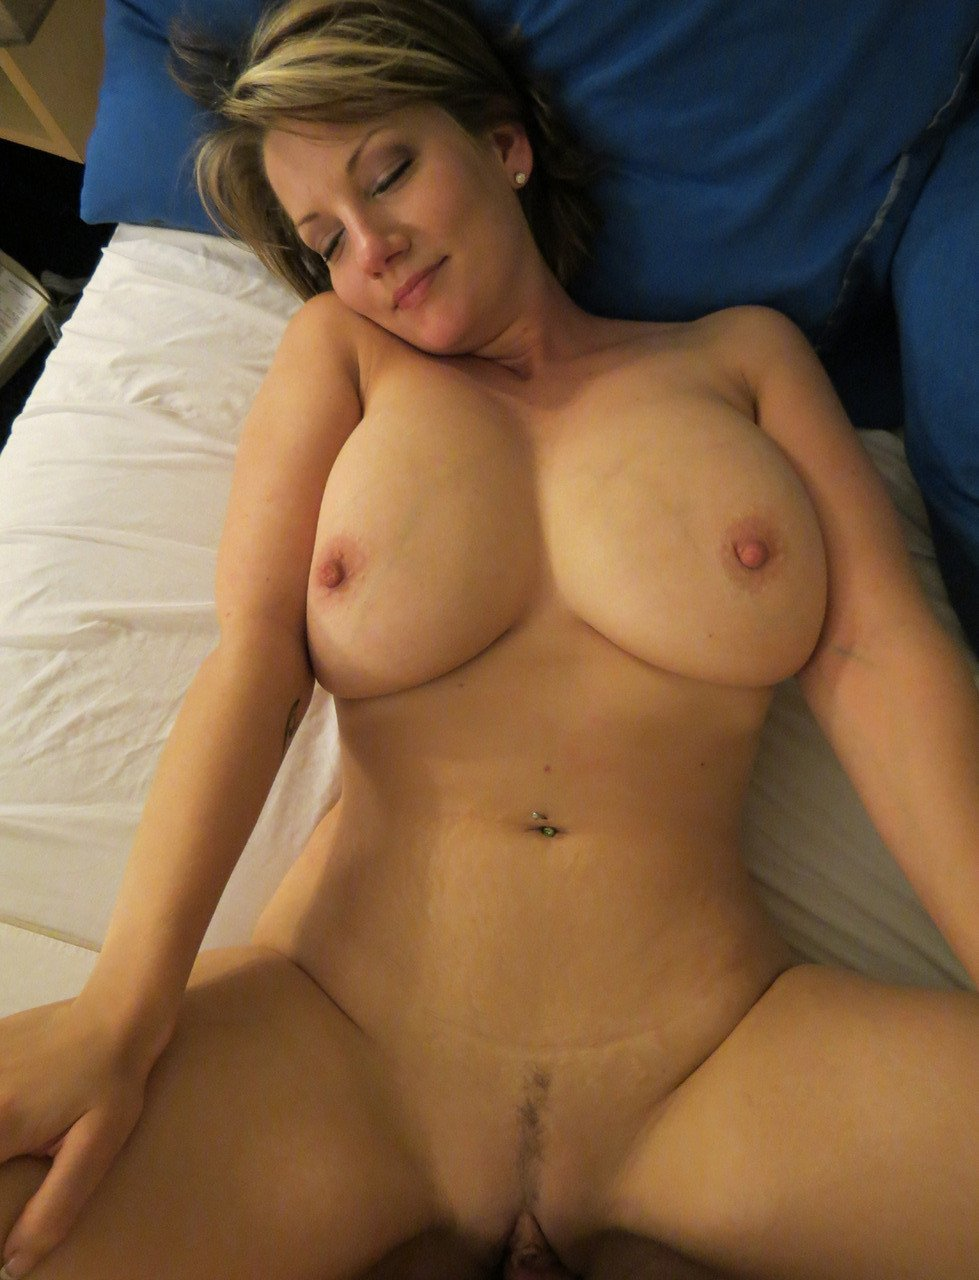 Just sit back Mature anal porn tube now looking have